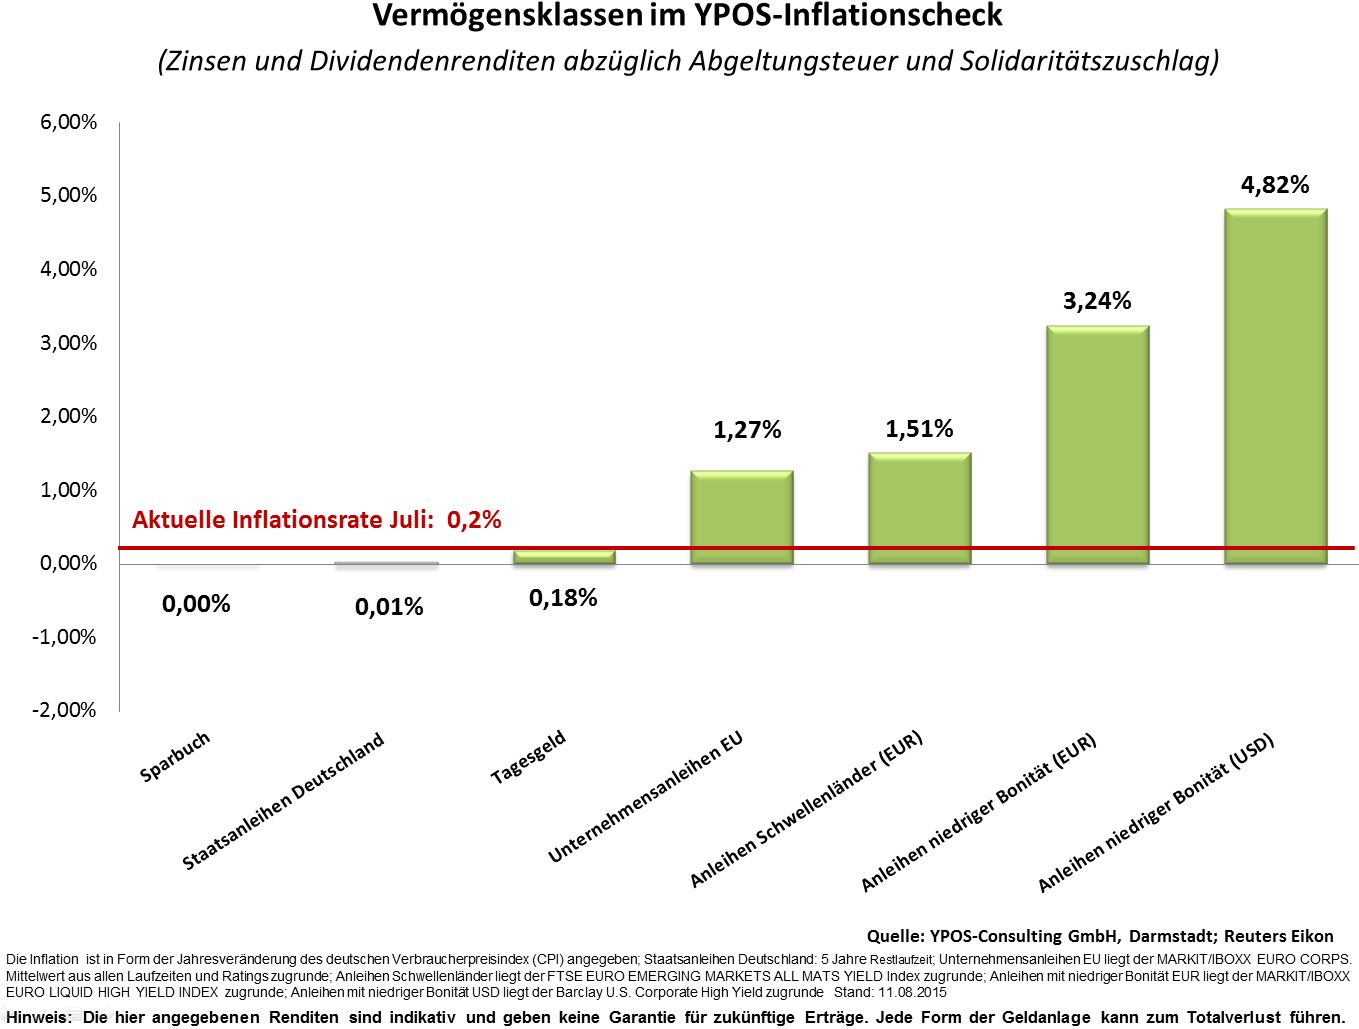 YPOS Inflationscheck August 2015